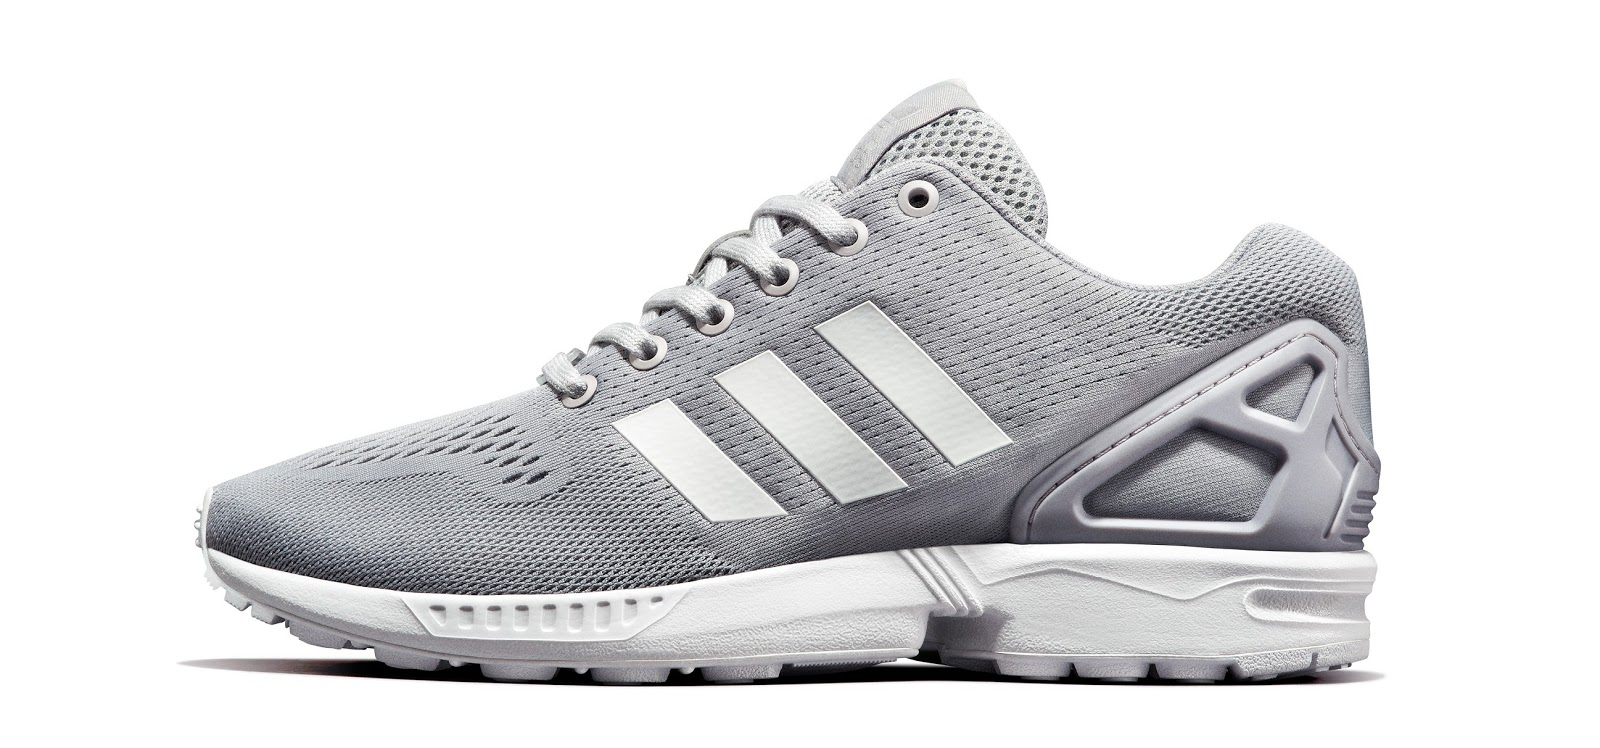 ADIDAS ORIGINALS ZX FLUX-JD SPORTS